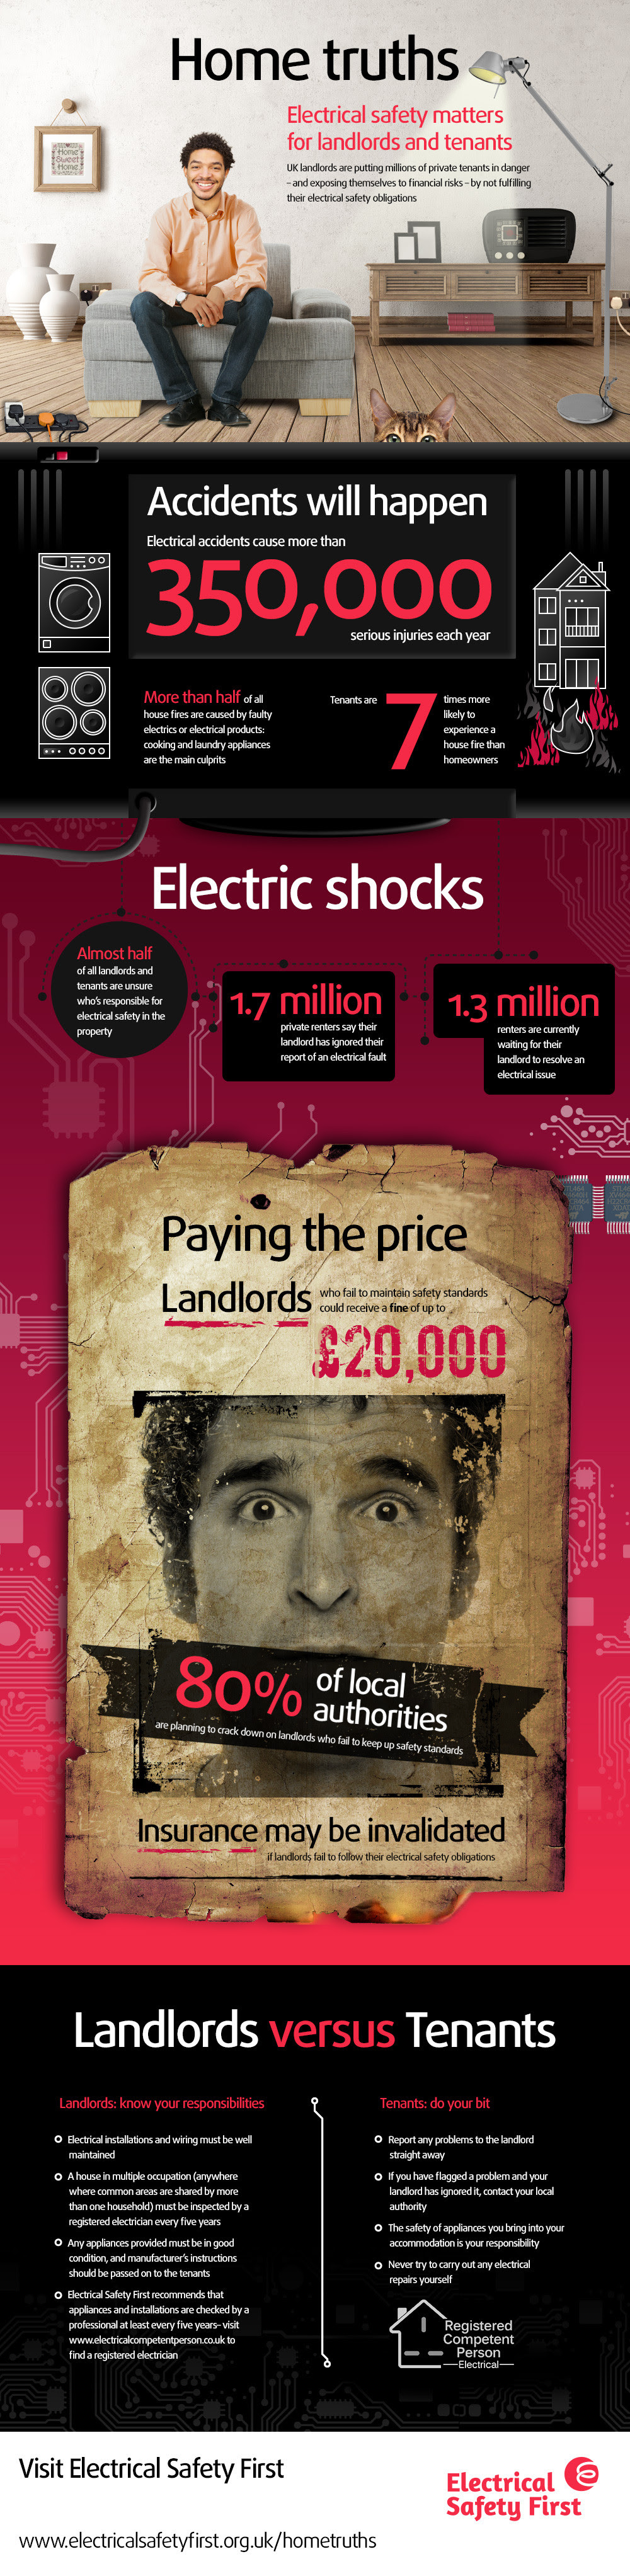 Infographic: Home Truths Electrical Safety matters for Landlords and Tenants